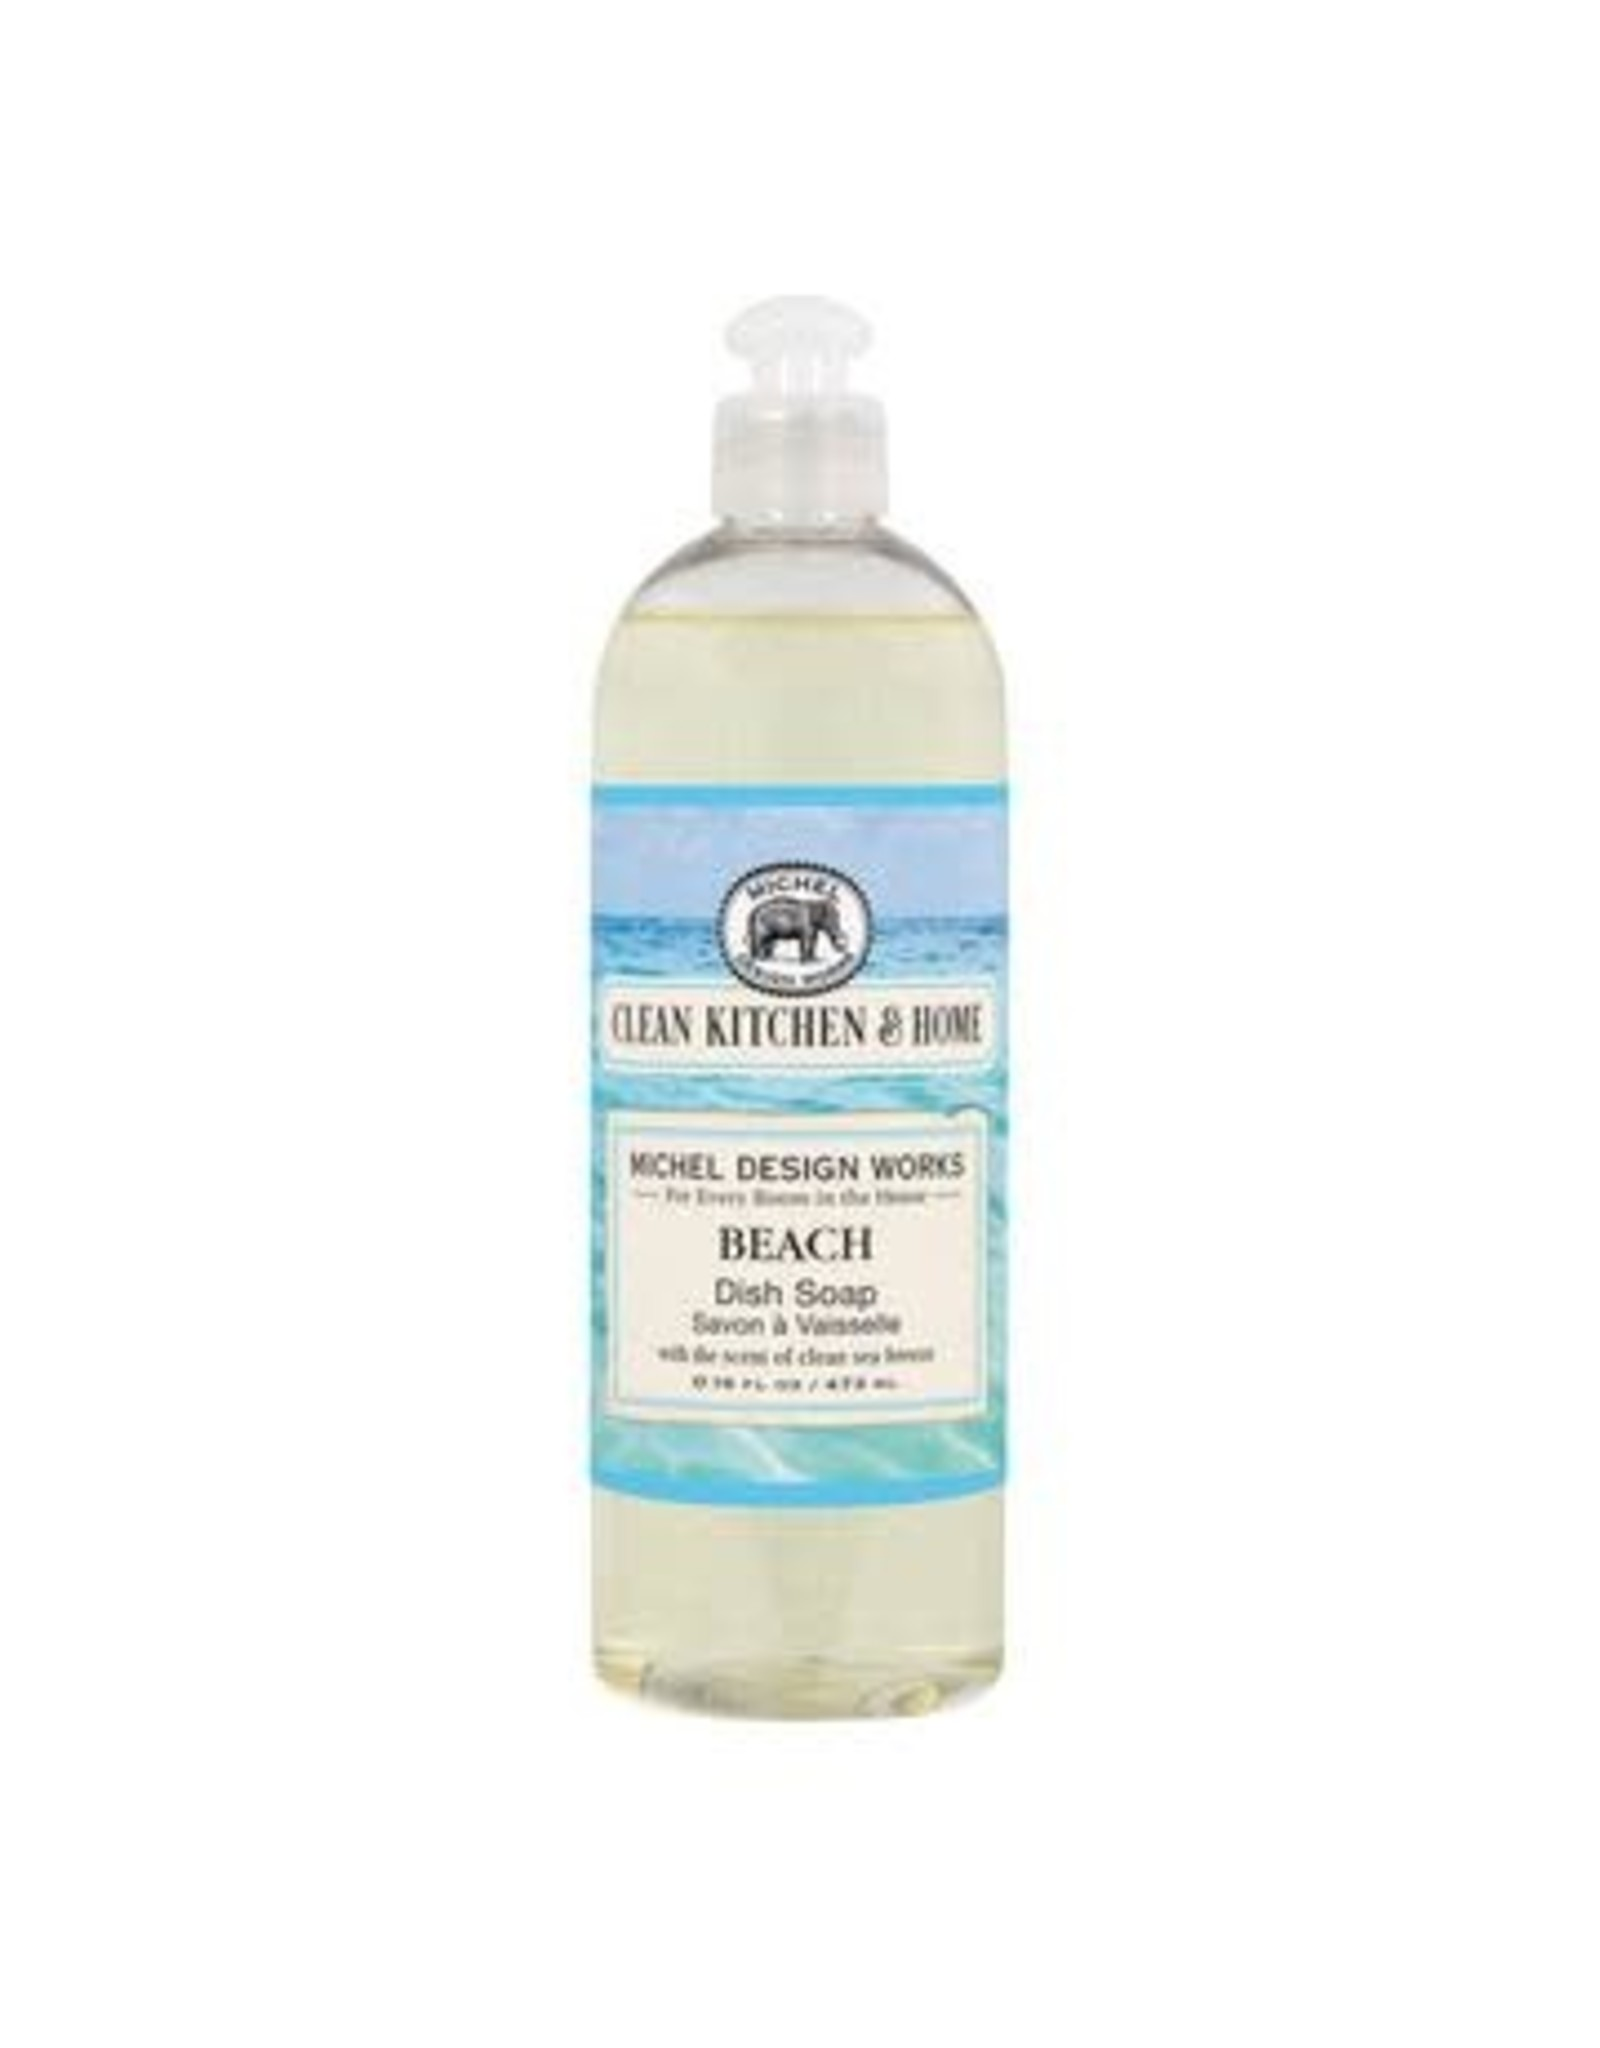 Michel Design Dish Soap, Beach, 16oz